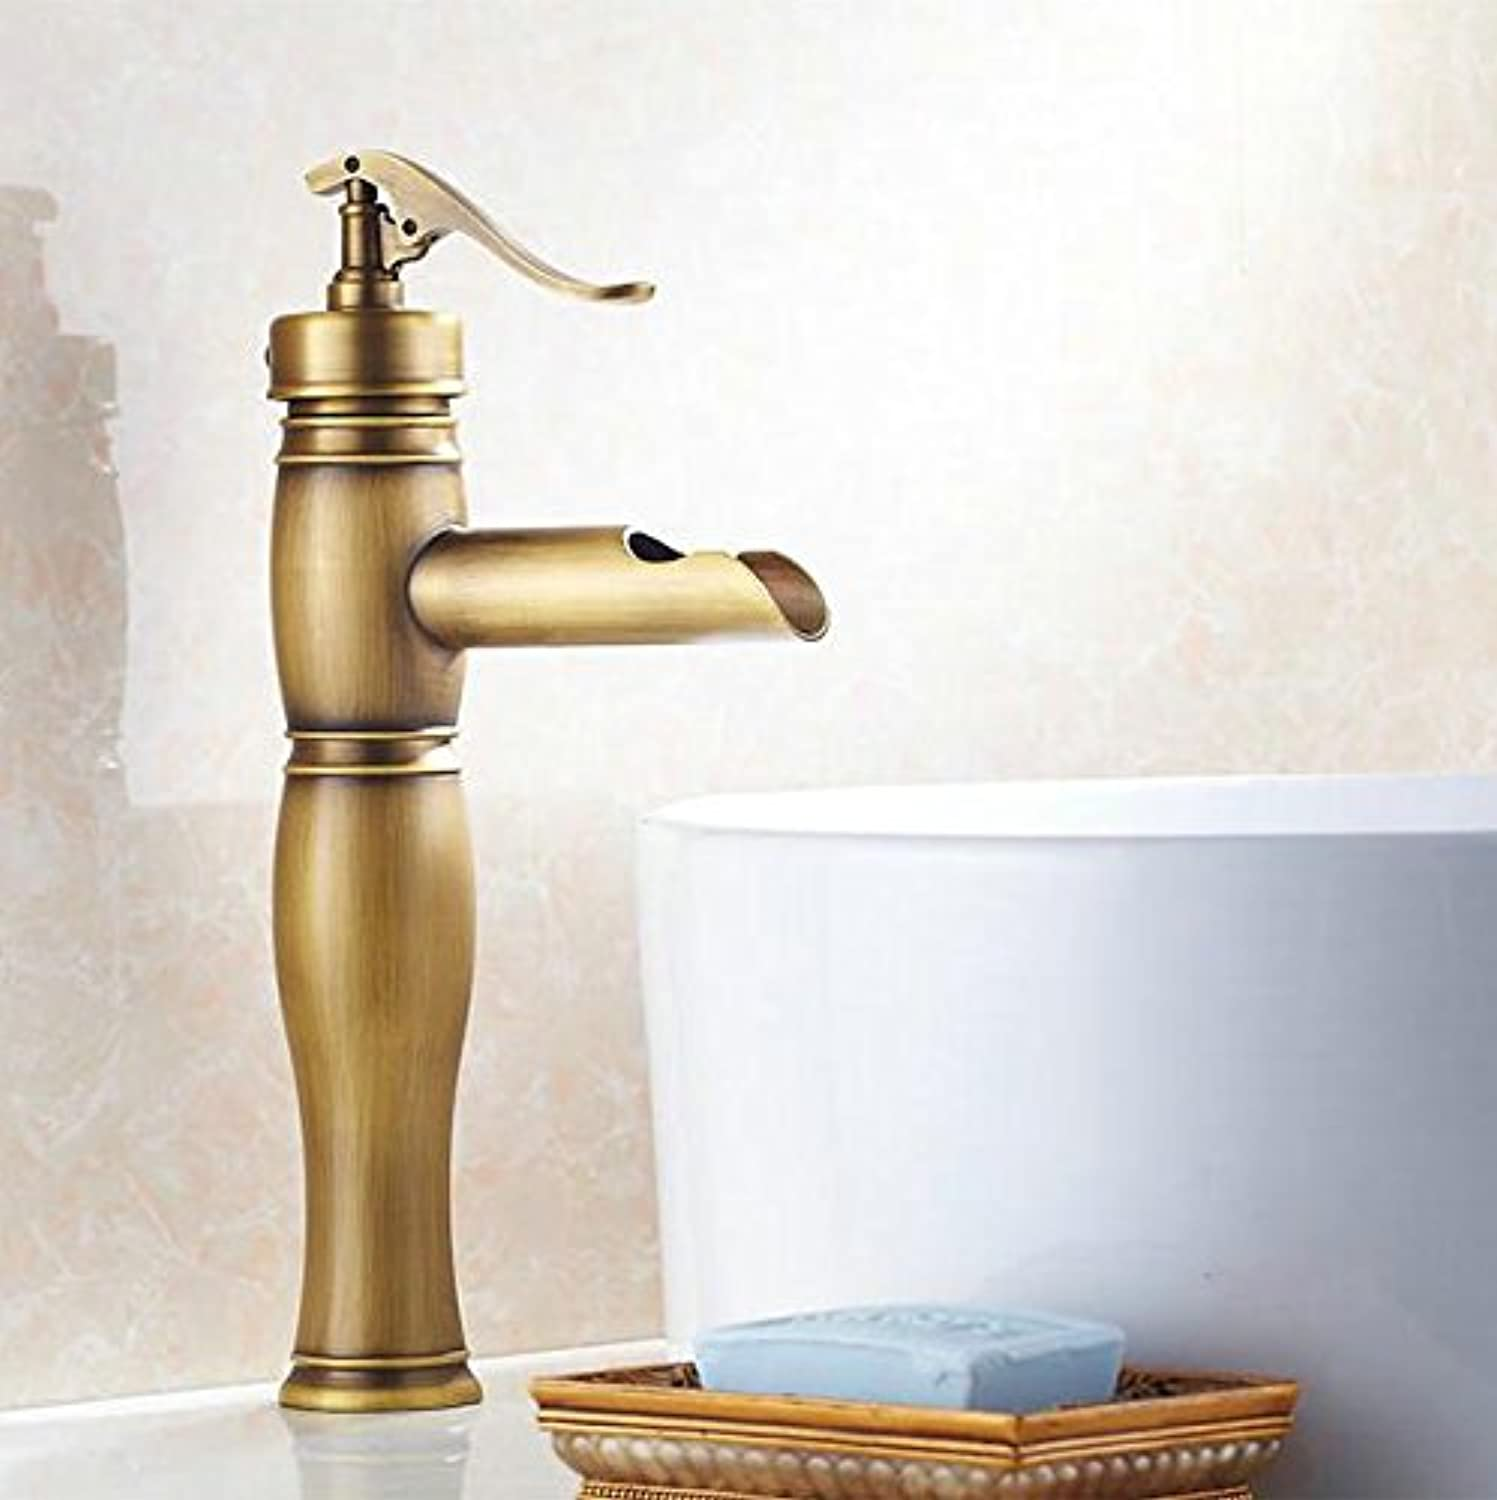 Makej Makej Antique Brass Deck Mounted Bathroom Kitchen Sink Faucet Mixer Taps Vanity Faucet Tap